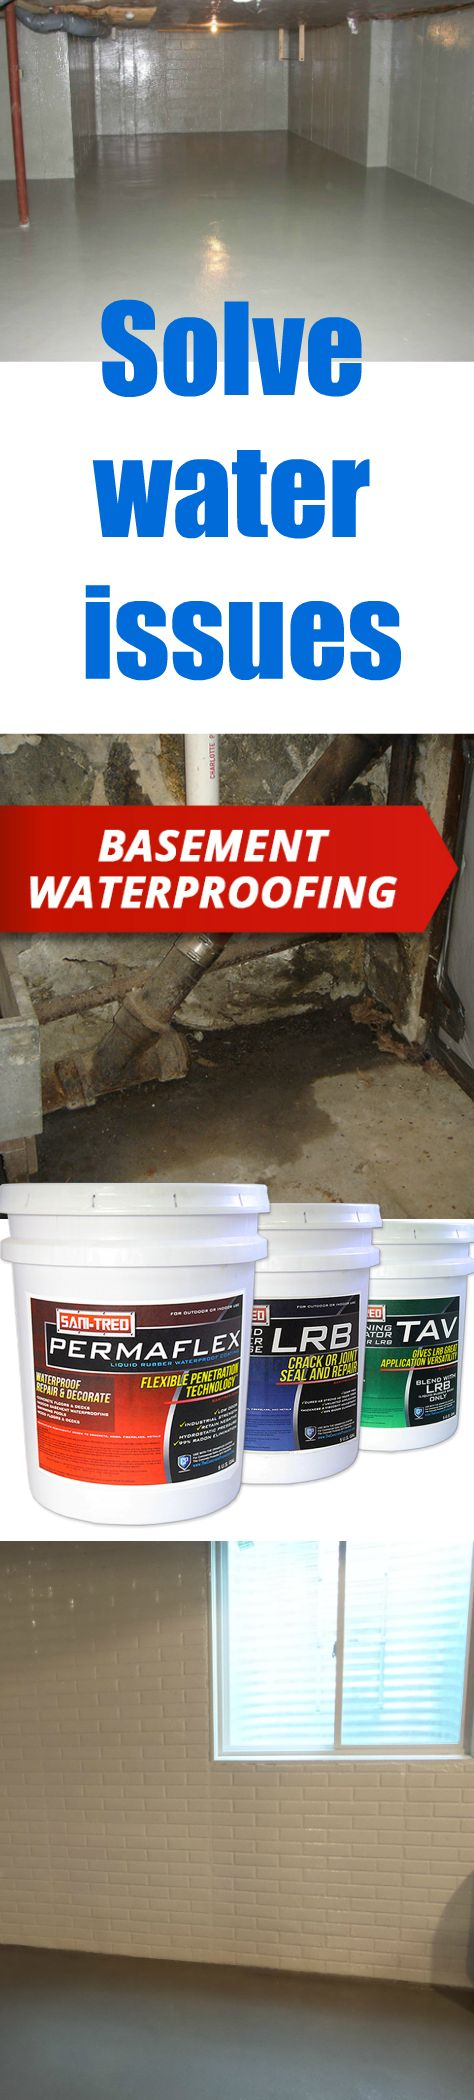 Solve water issues in your basement once and for all! DIY basement waterproofing.  Click to learn more!